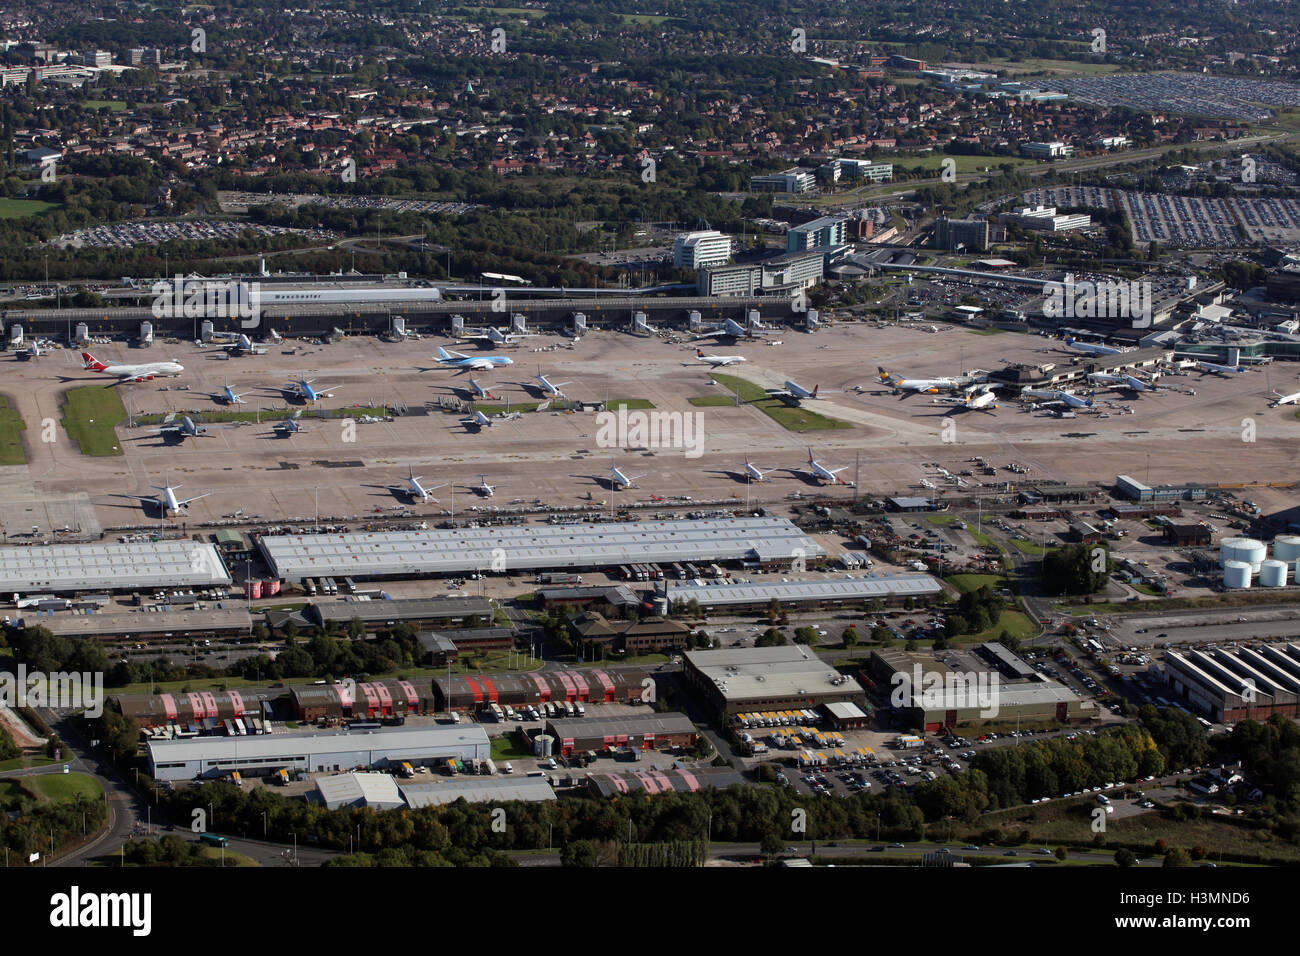 aerial view of Manchester Airport, UK - Stock Image